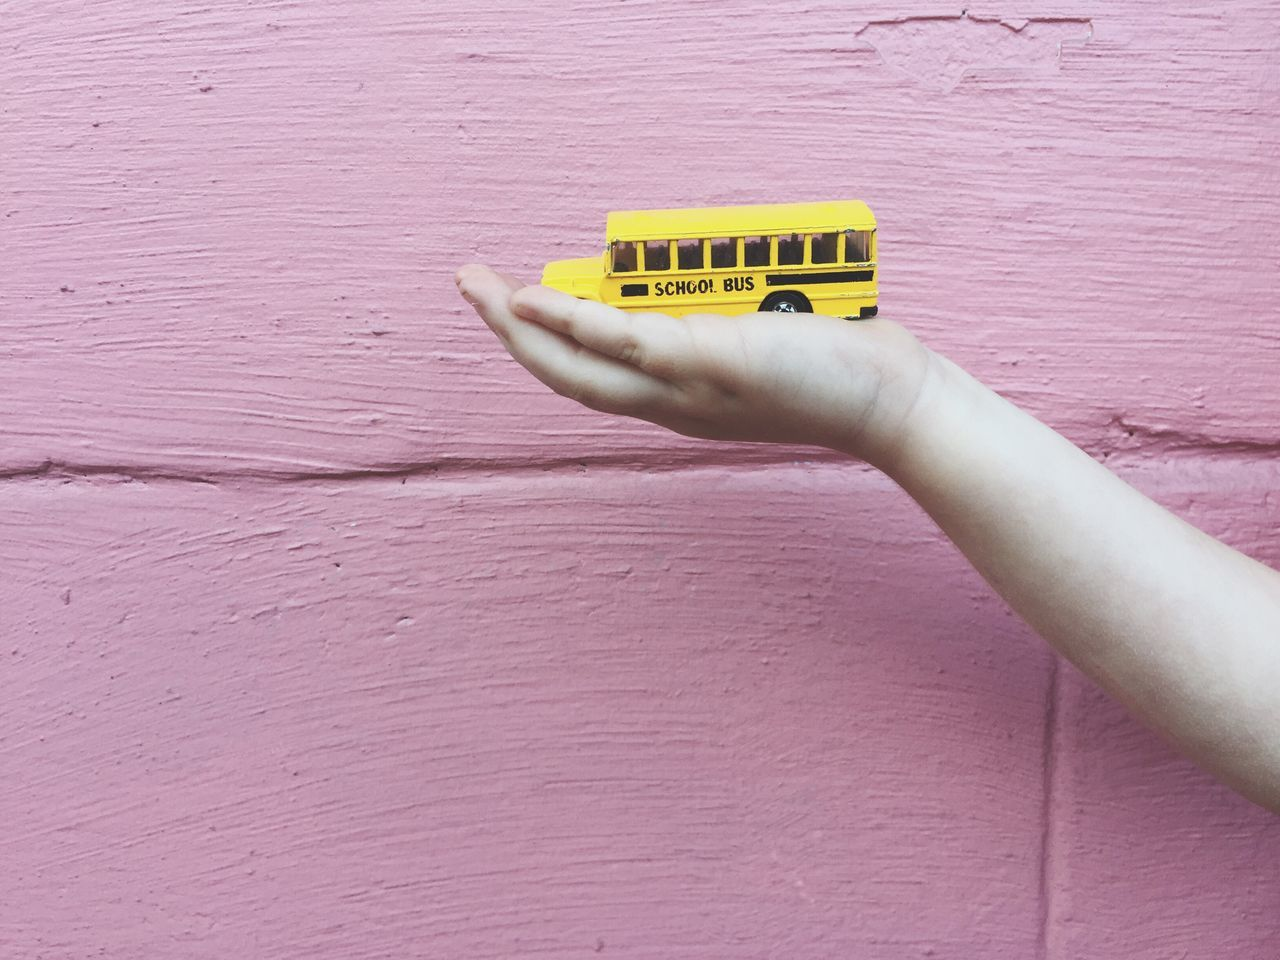 Pink Wall School Bus Hands Pink Fun Toy Child Memories My Commute